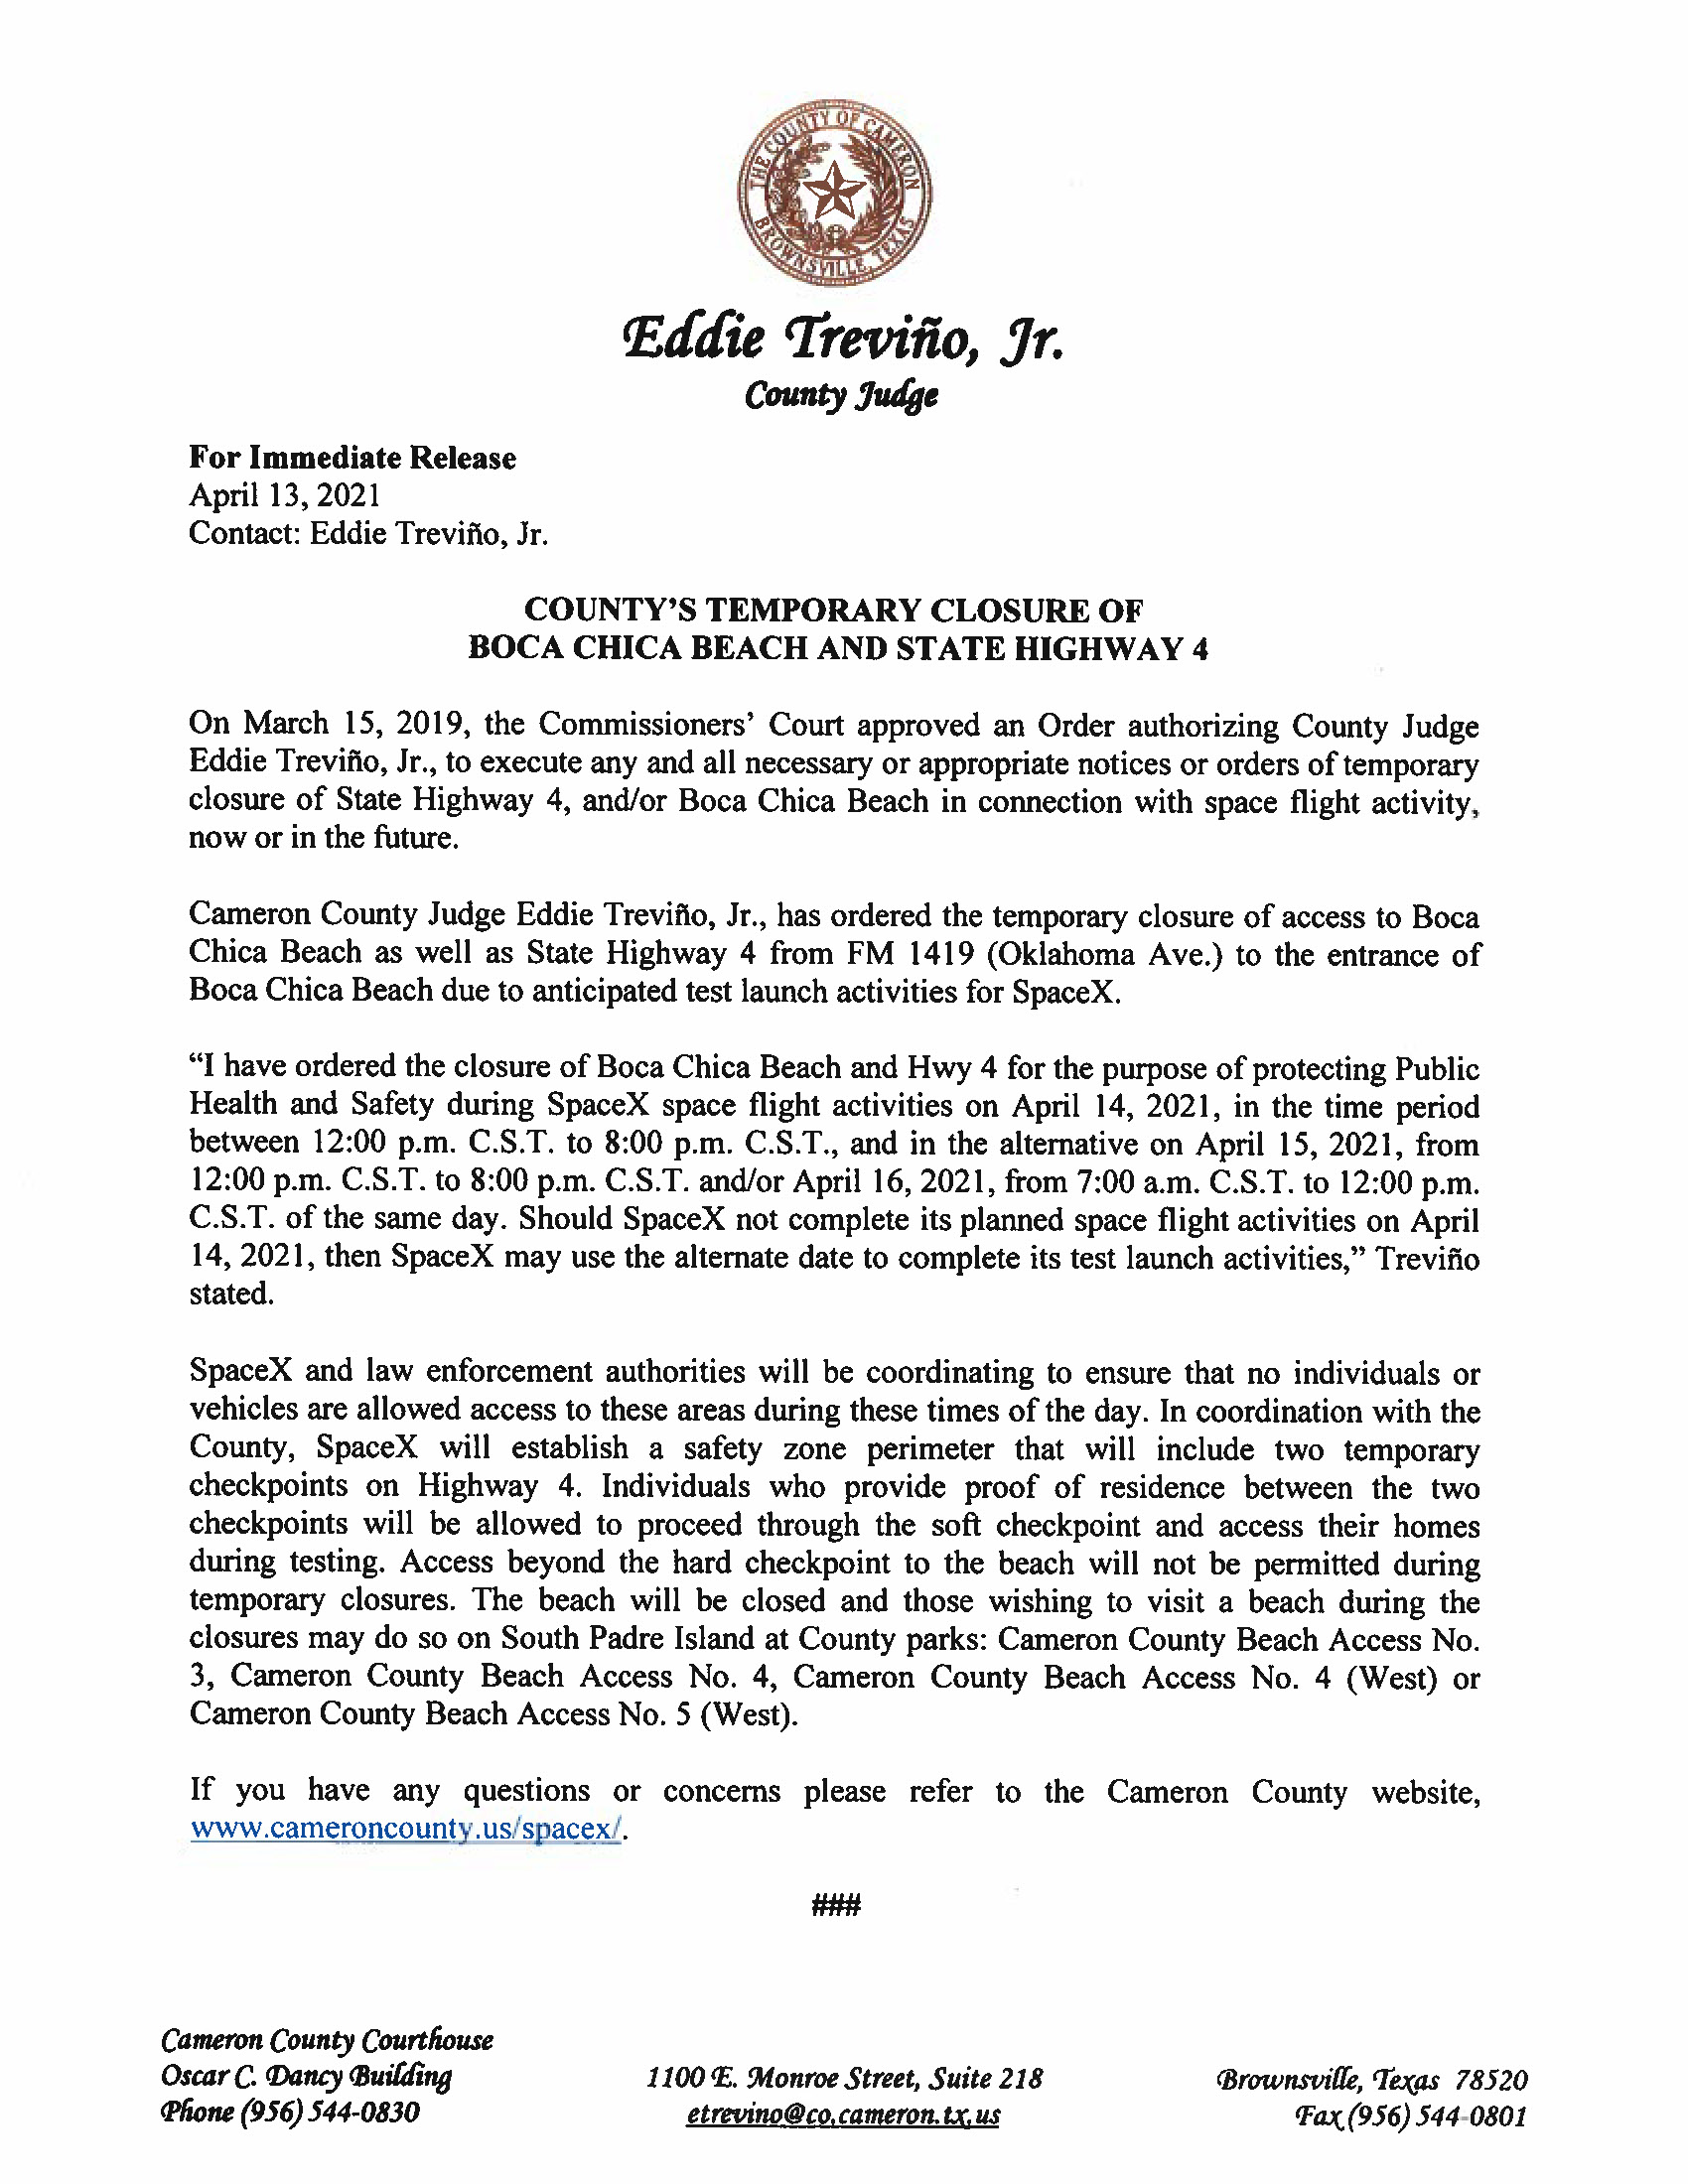 Press Release In English And Spanish.04.14.2021 Page 1